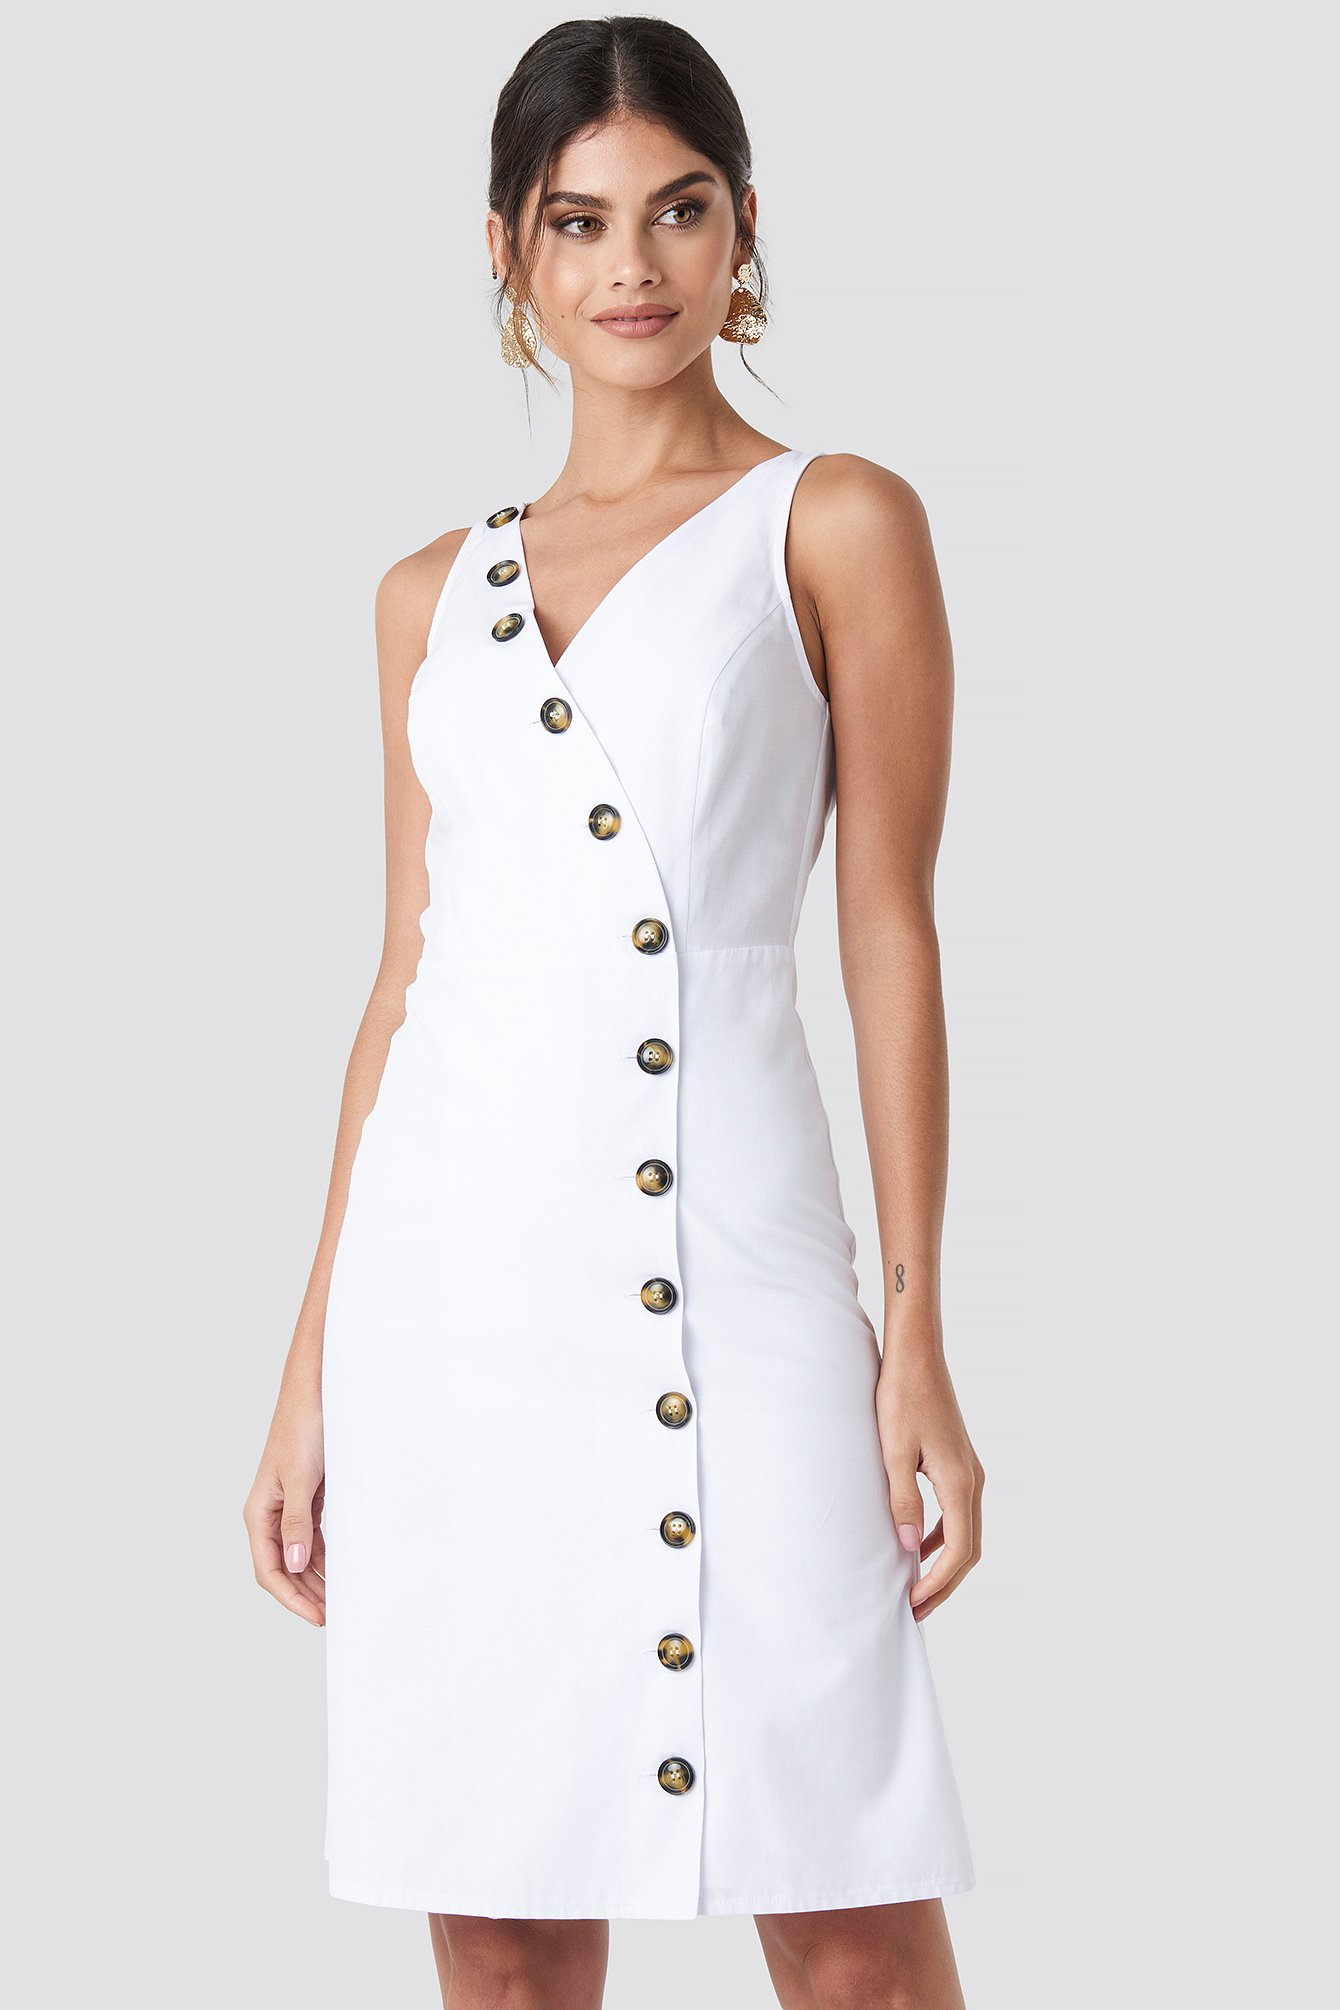 na-kd trend -  Buttoned Detail Dress - White